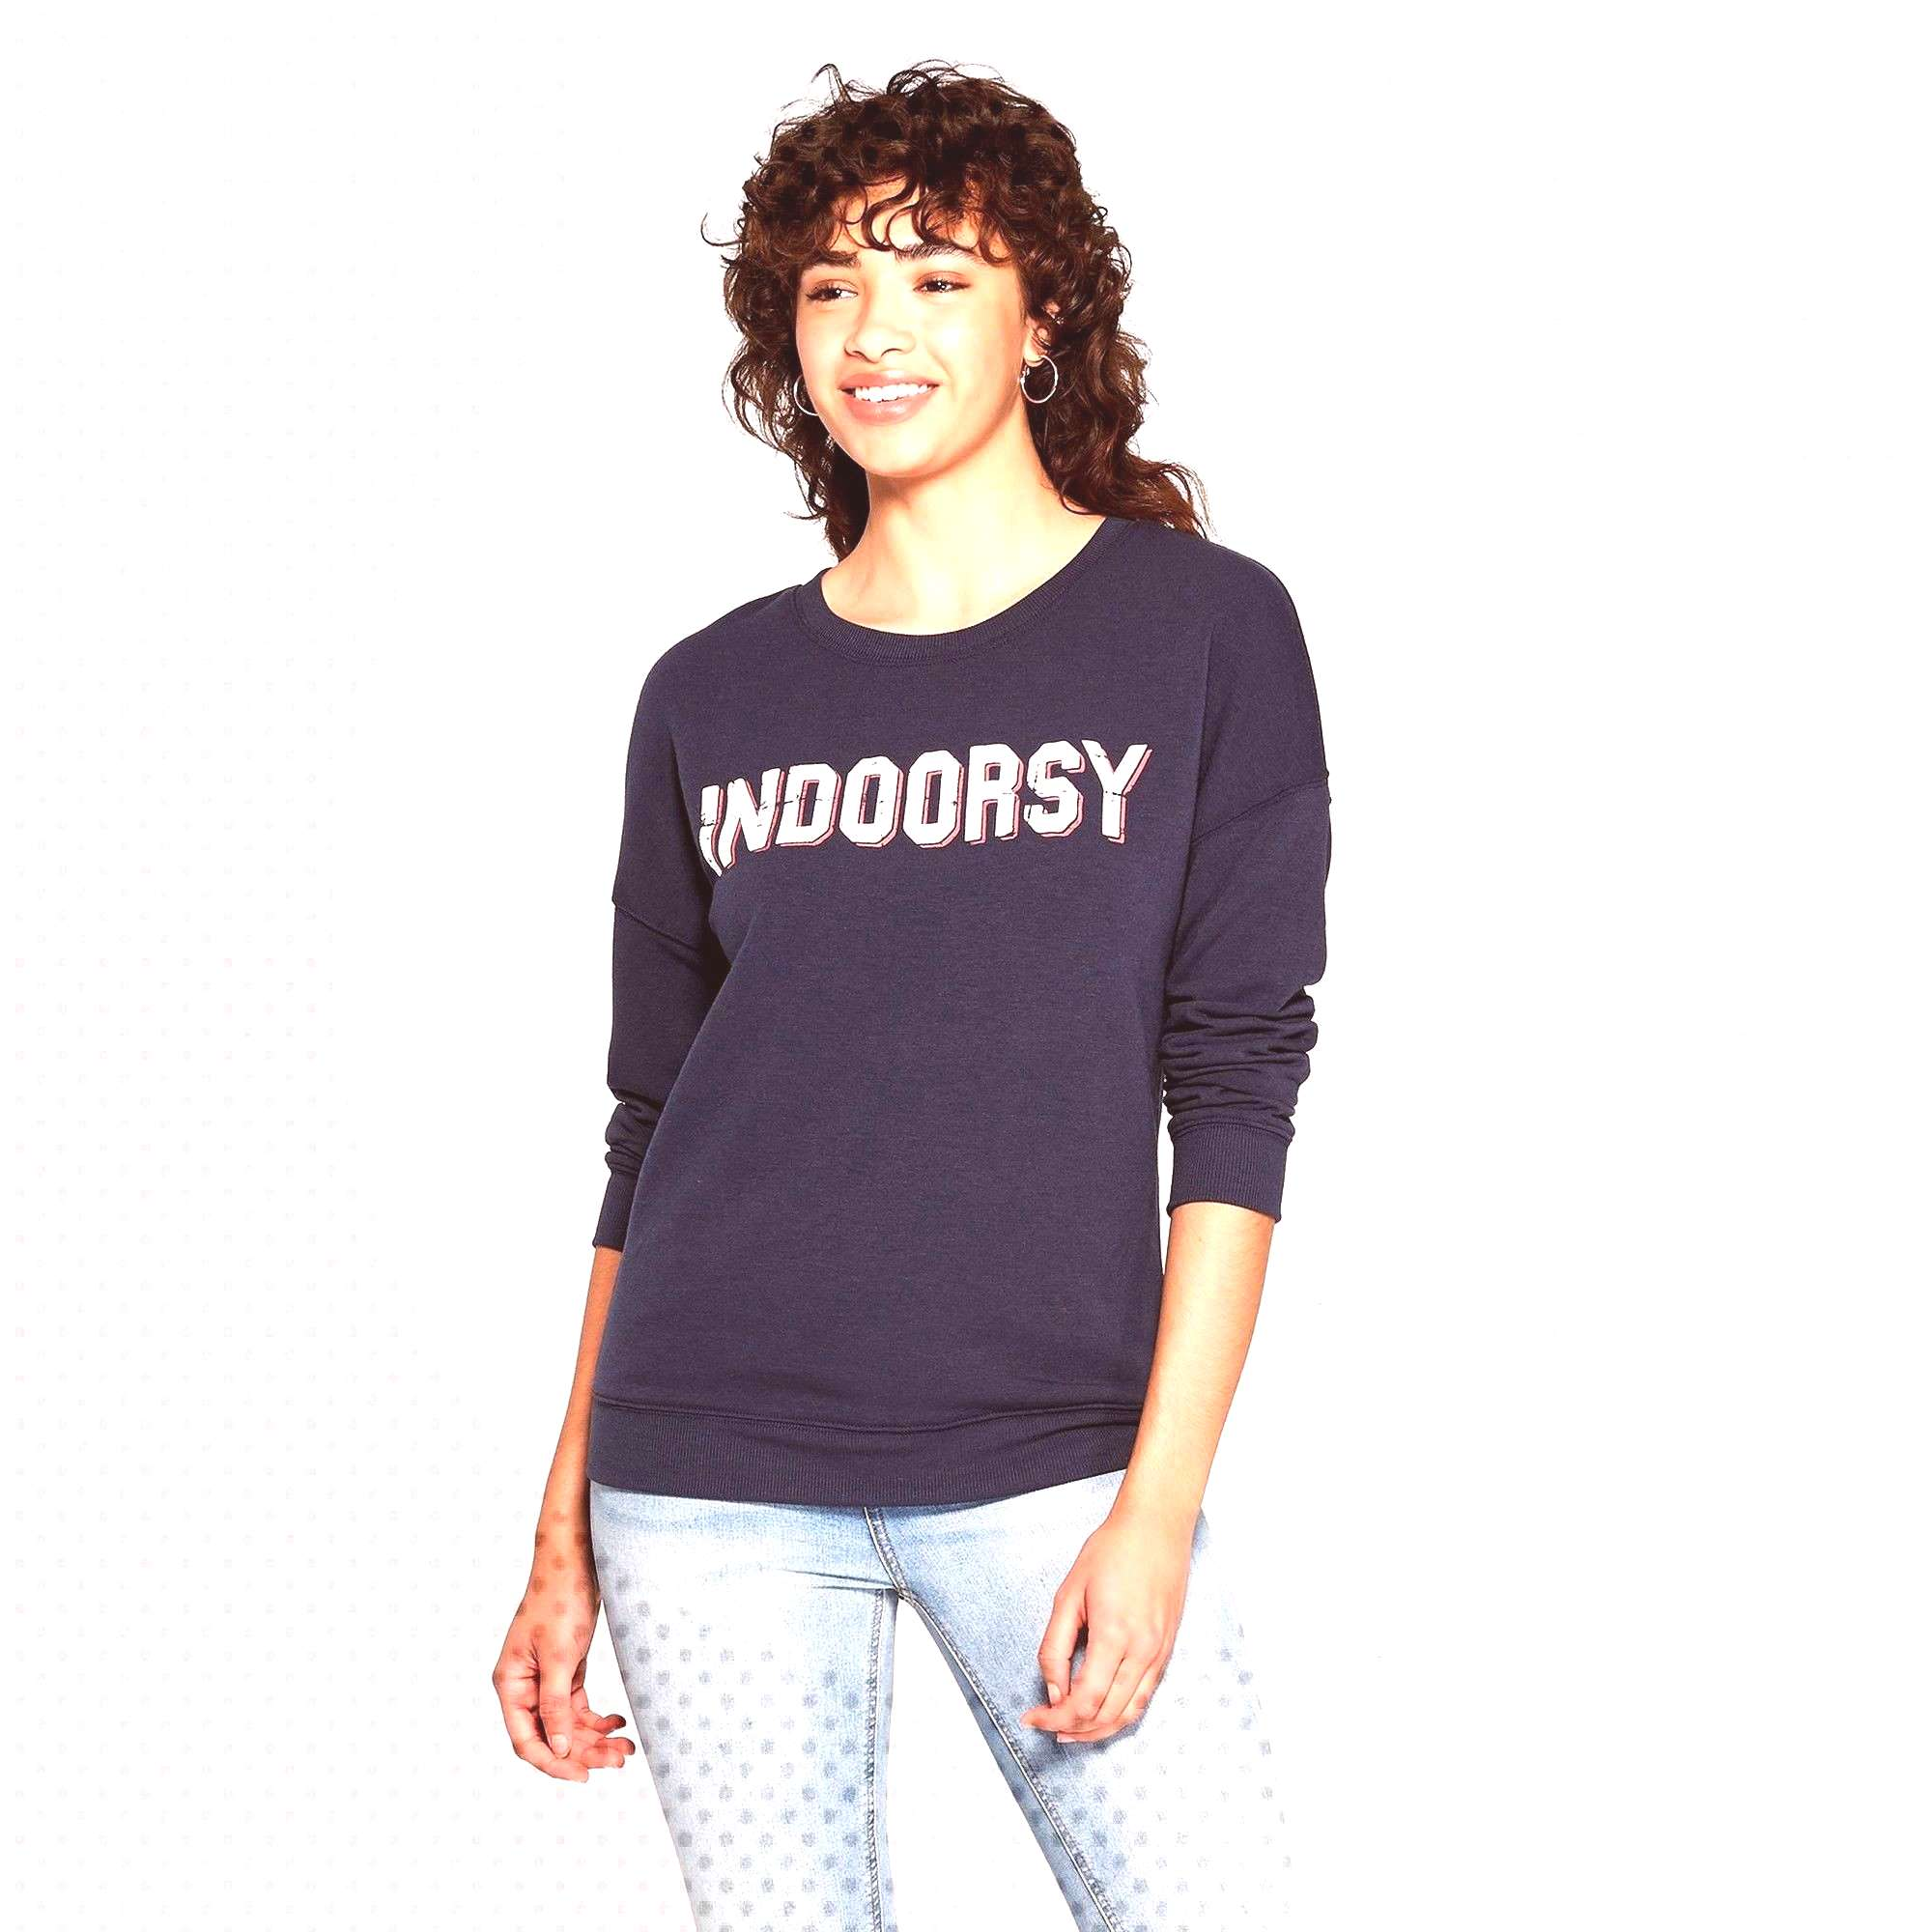 Womens Indoorsy Sweatshirt - Zoe+Liv (Juniors) - Blue S, Womens, Size SmallYou can find indoors